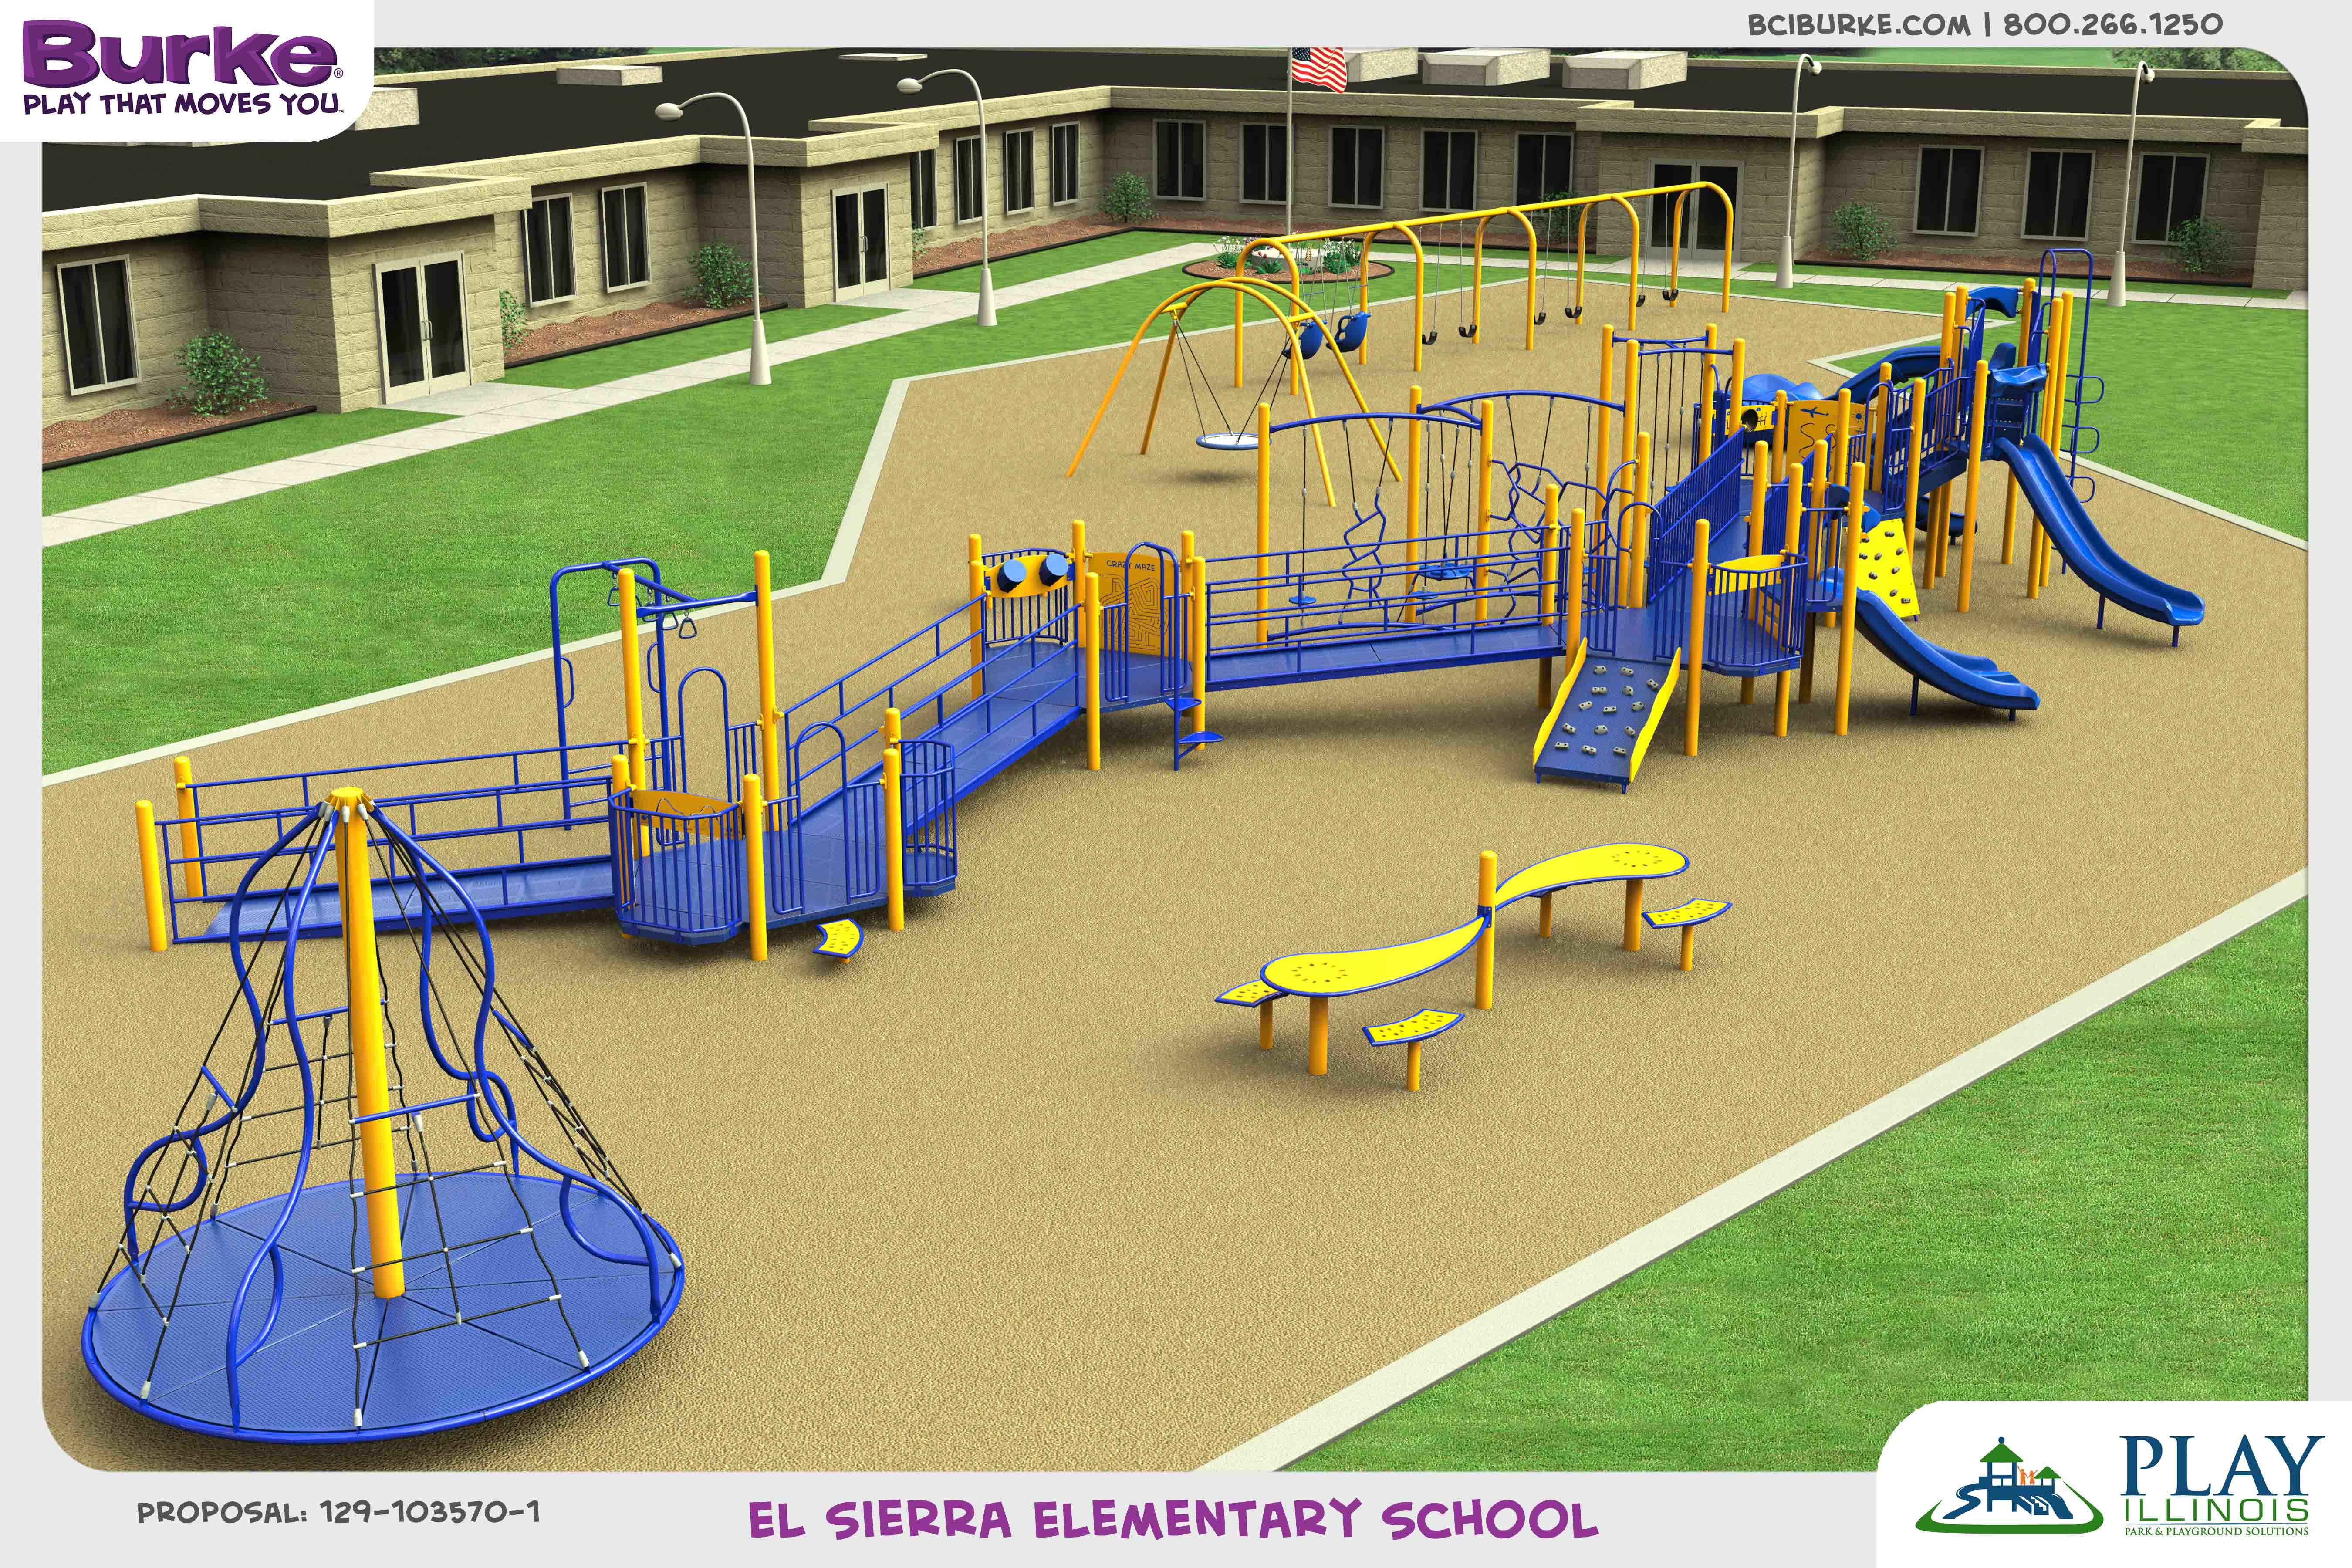 ElsierraElementary dream build play experience accessible playgrounds